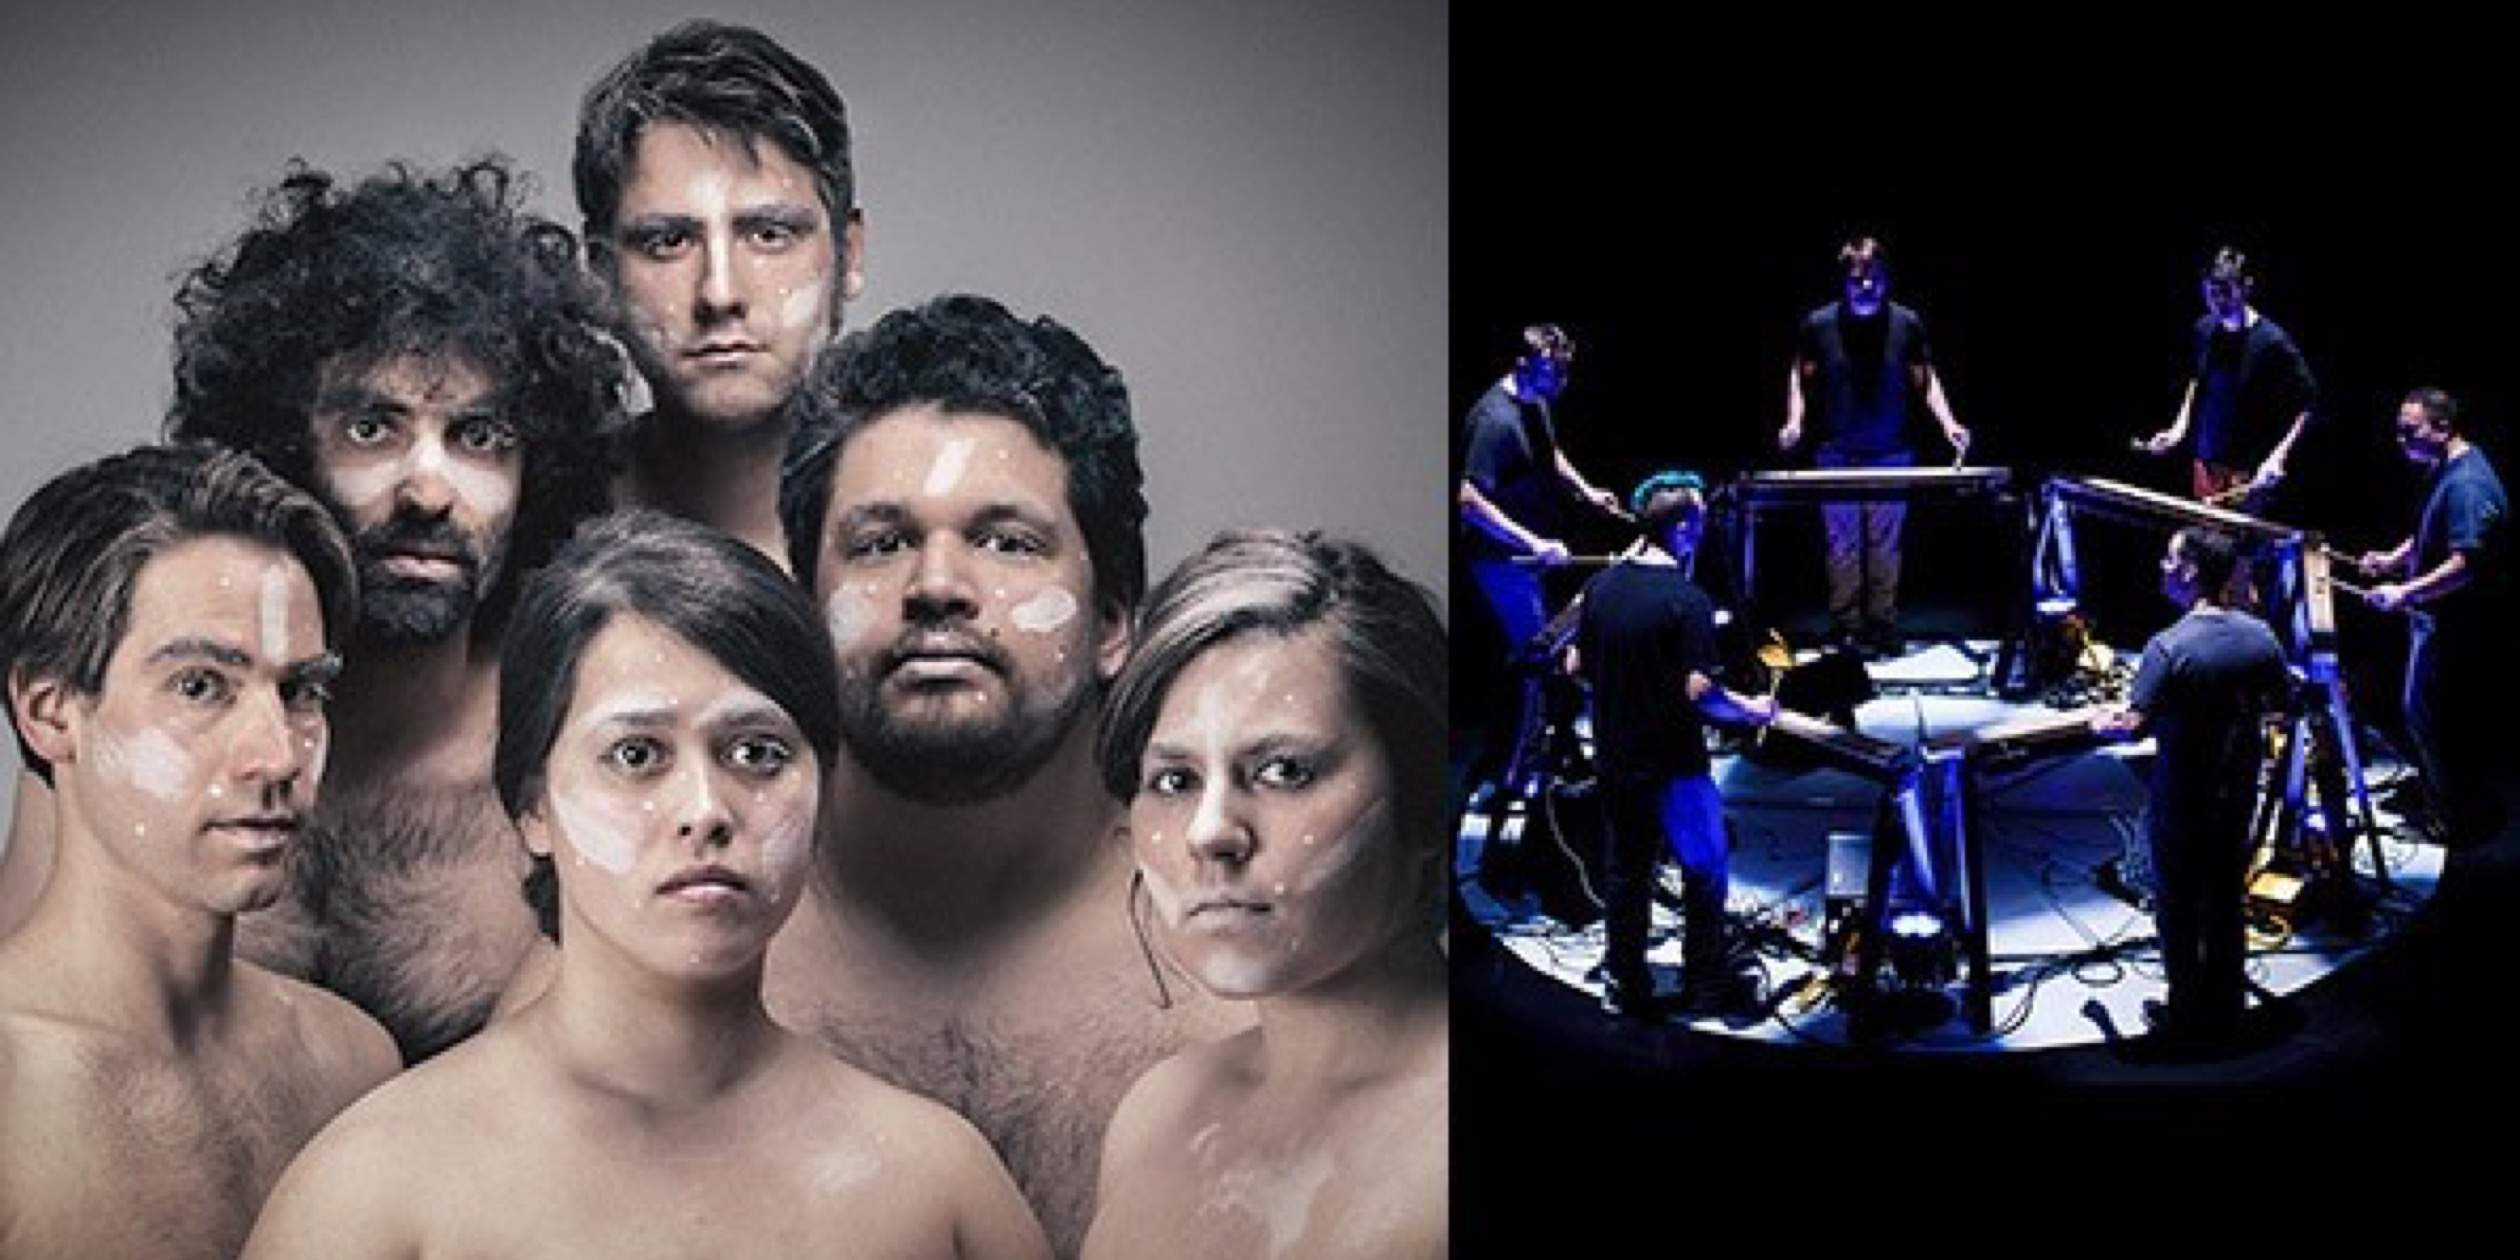 Mar 29: Bent Knee & Mantra Percussion